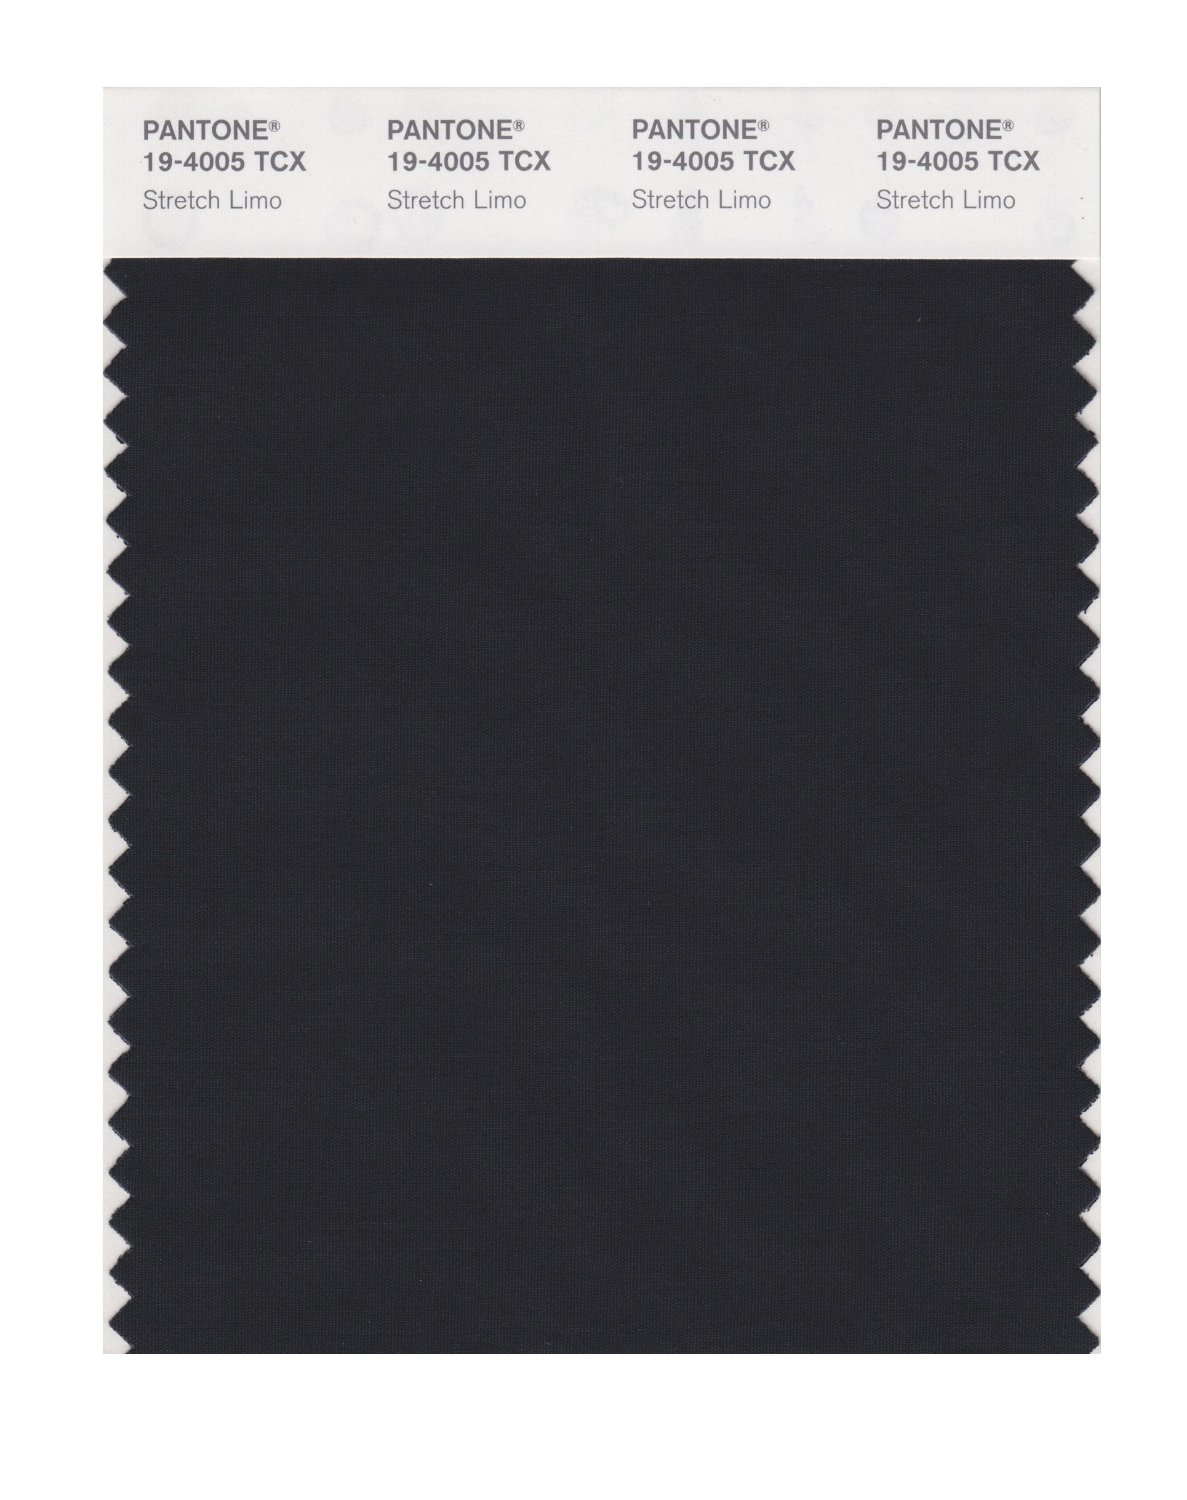 Pantone Smart Swatch 19-4005 Stretch Limo